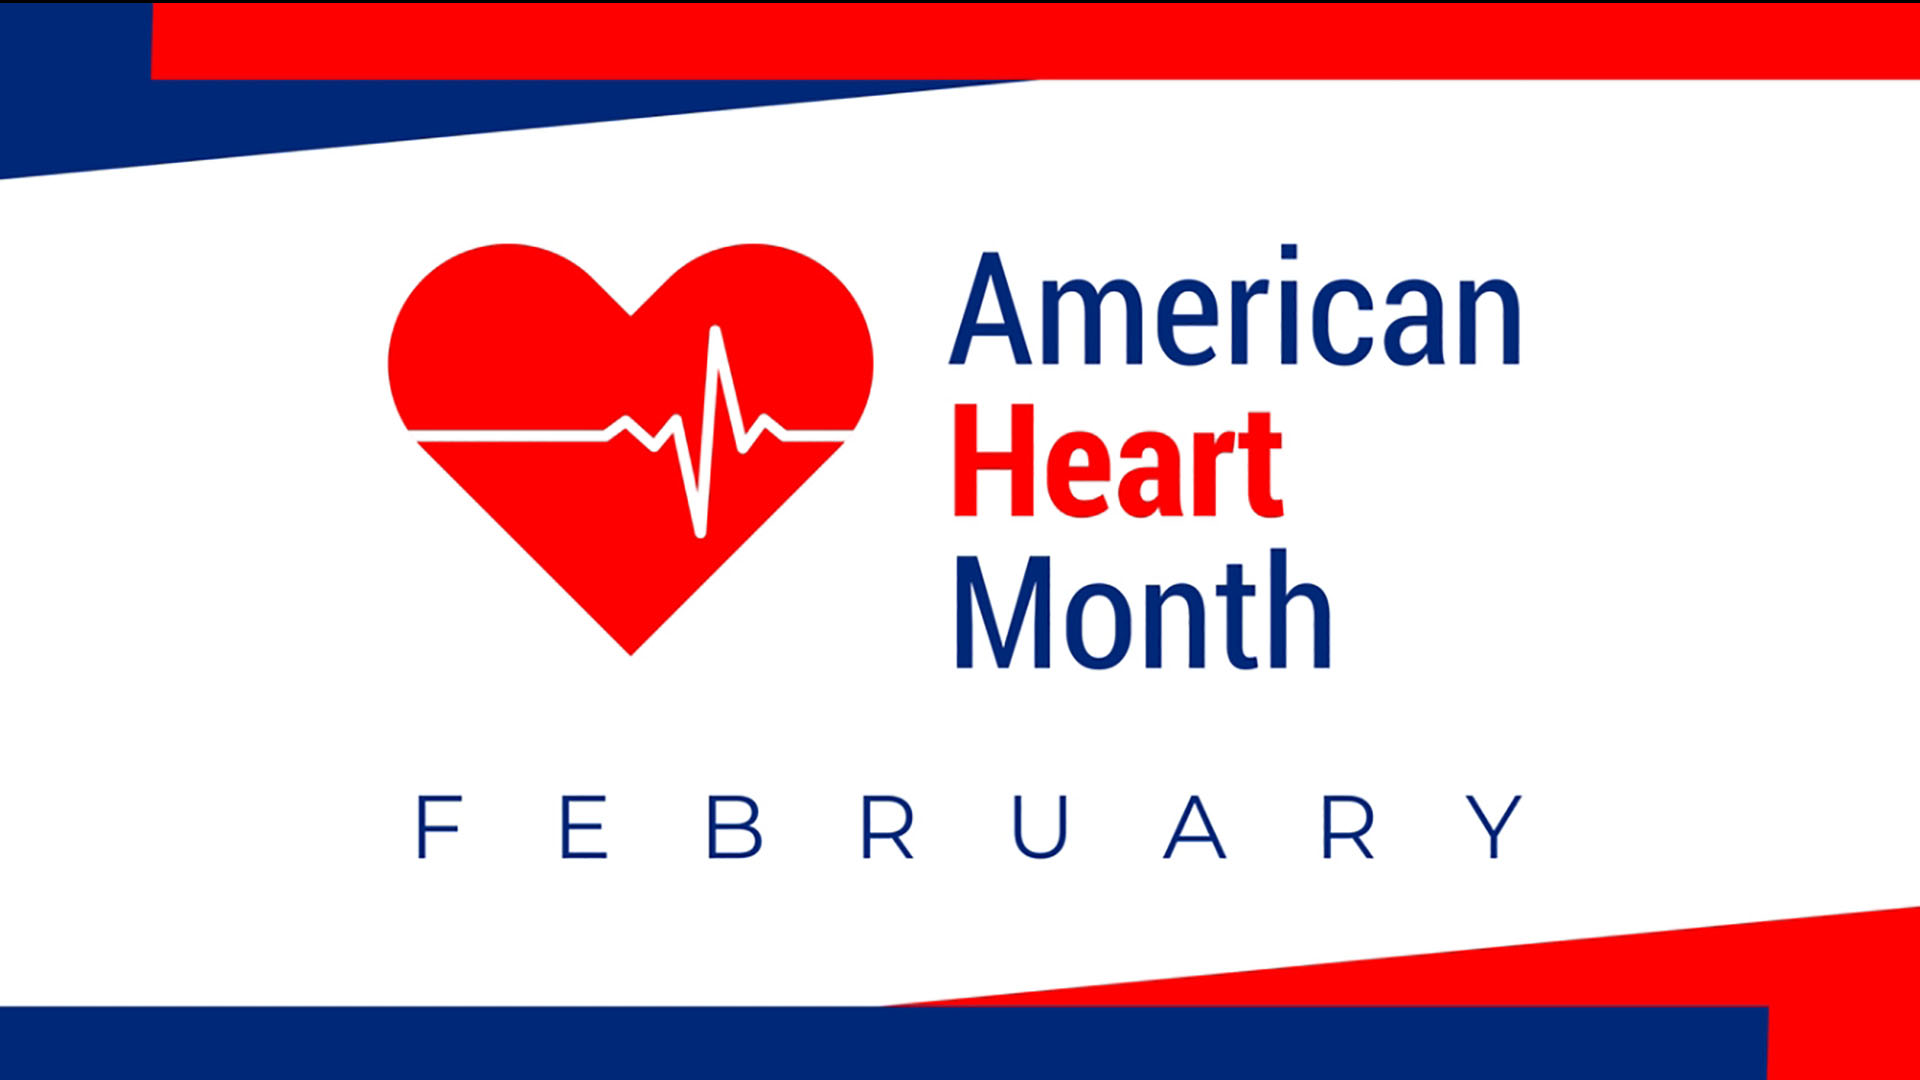 February National Heart Month Digital Signage Graphic 3